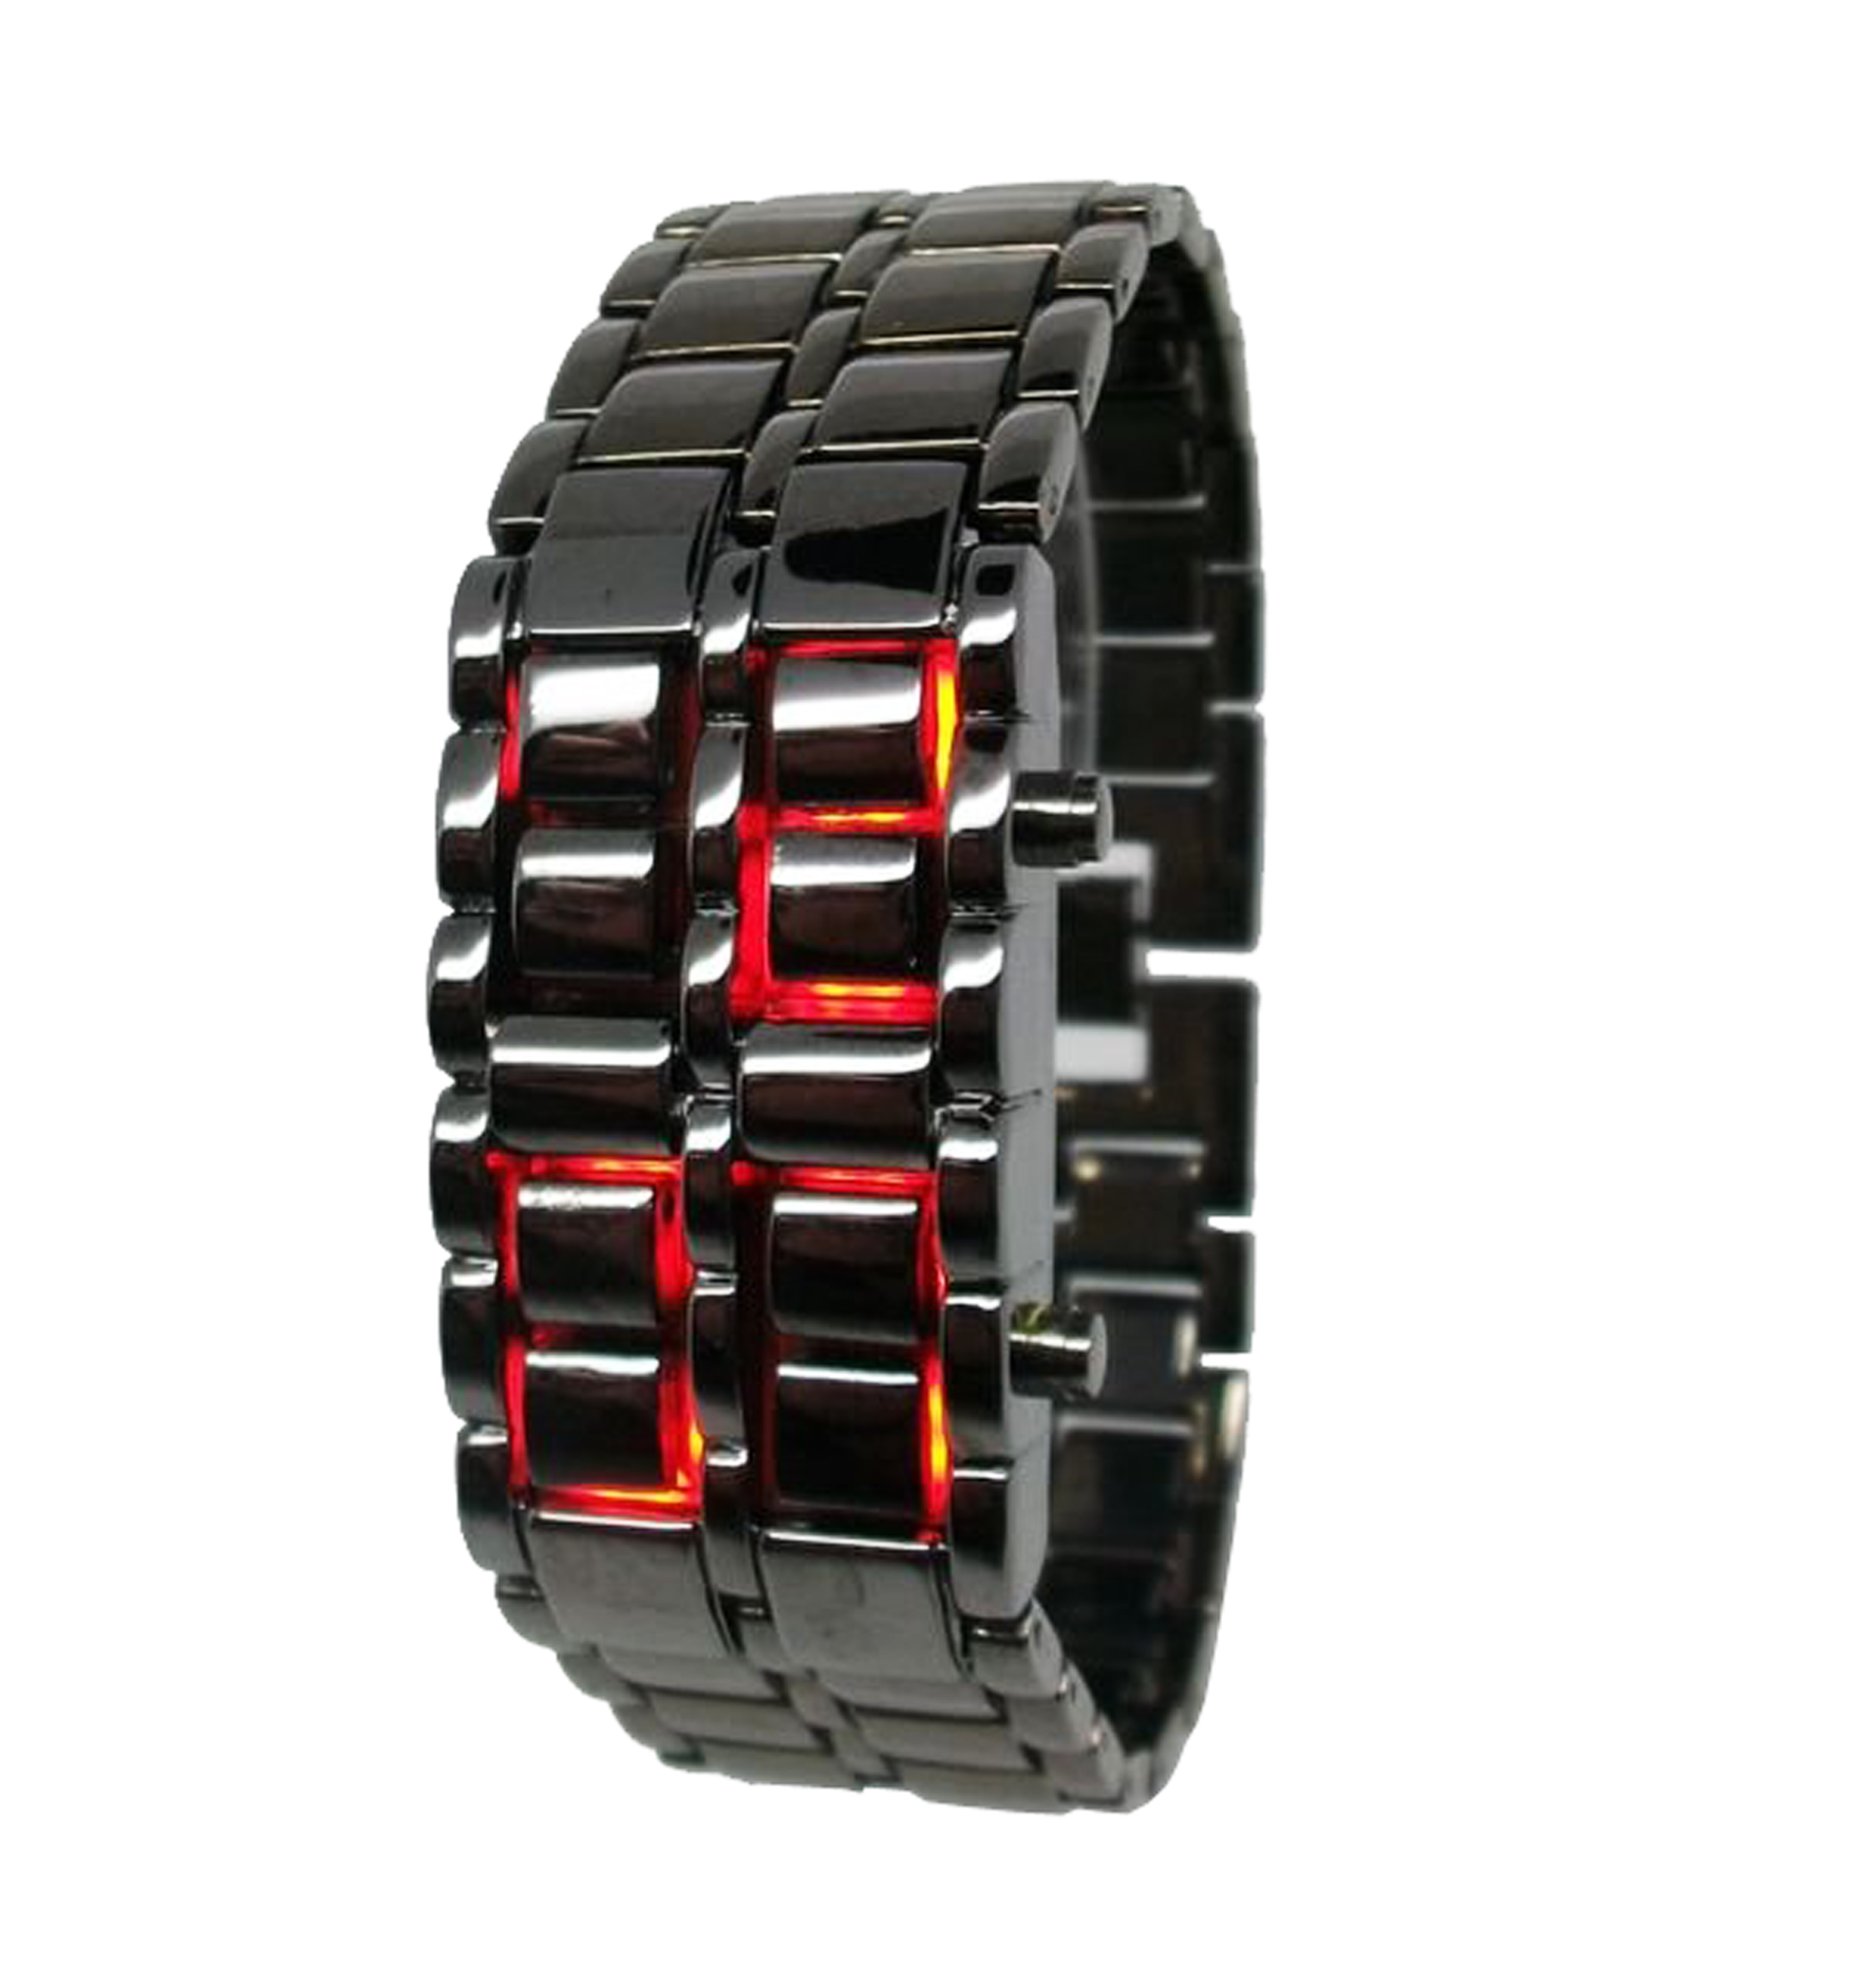 Iron Samurai Watch - rood